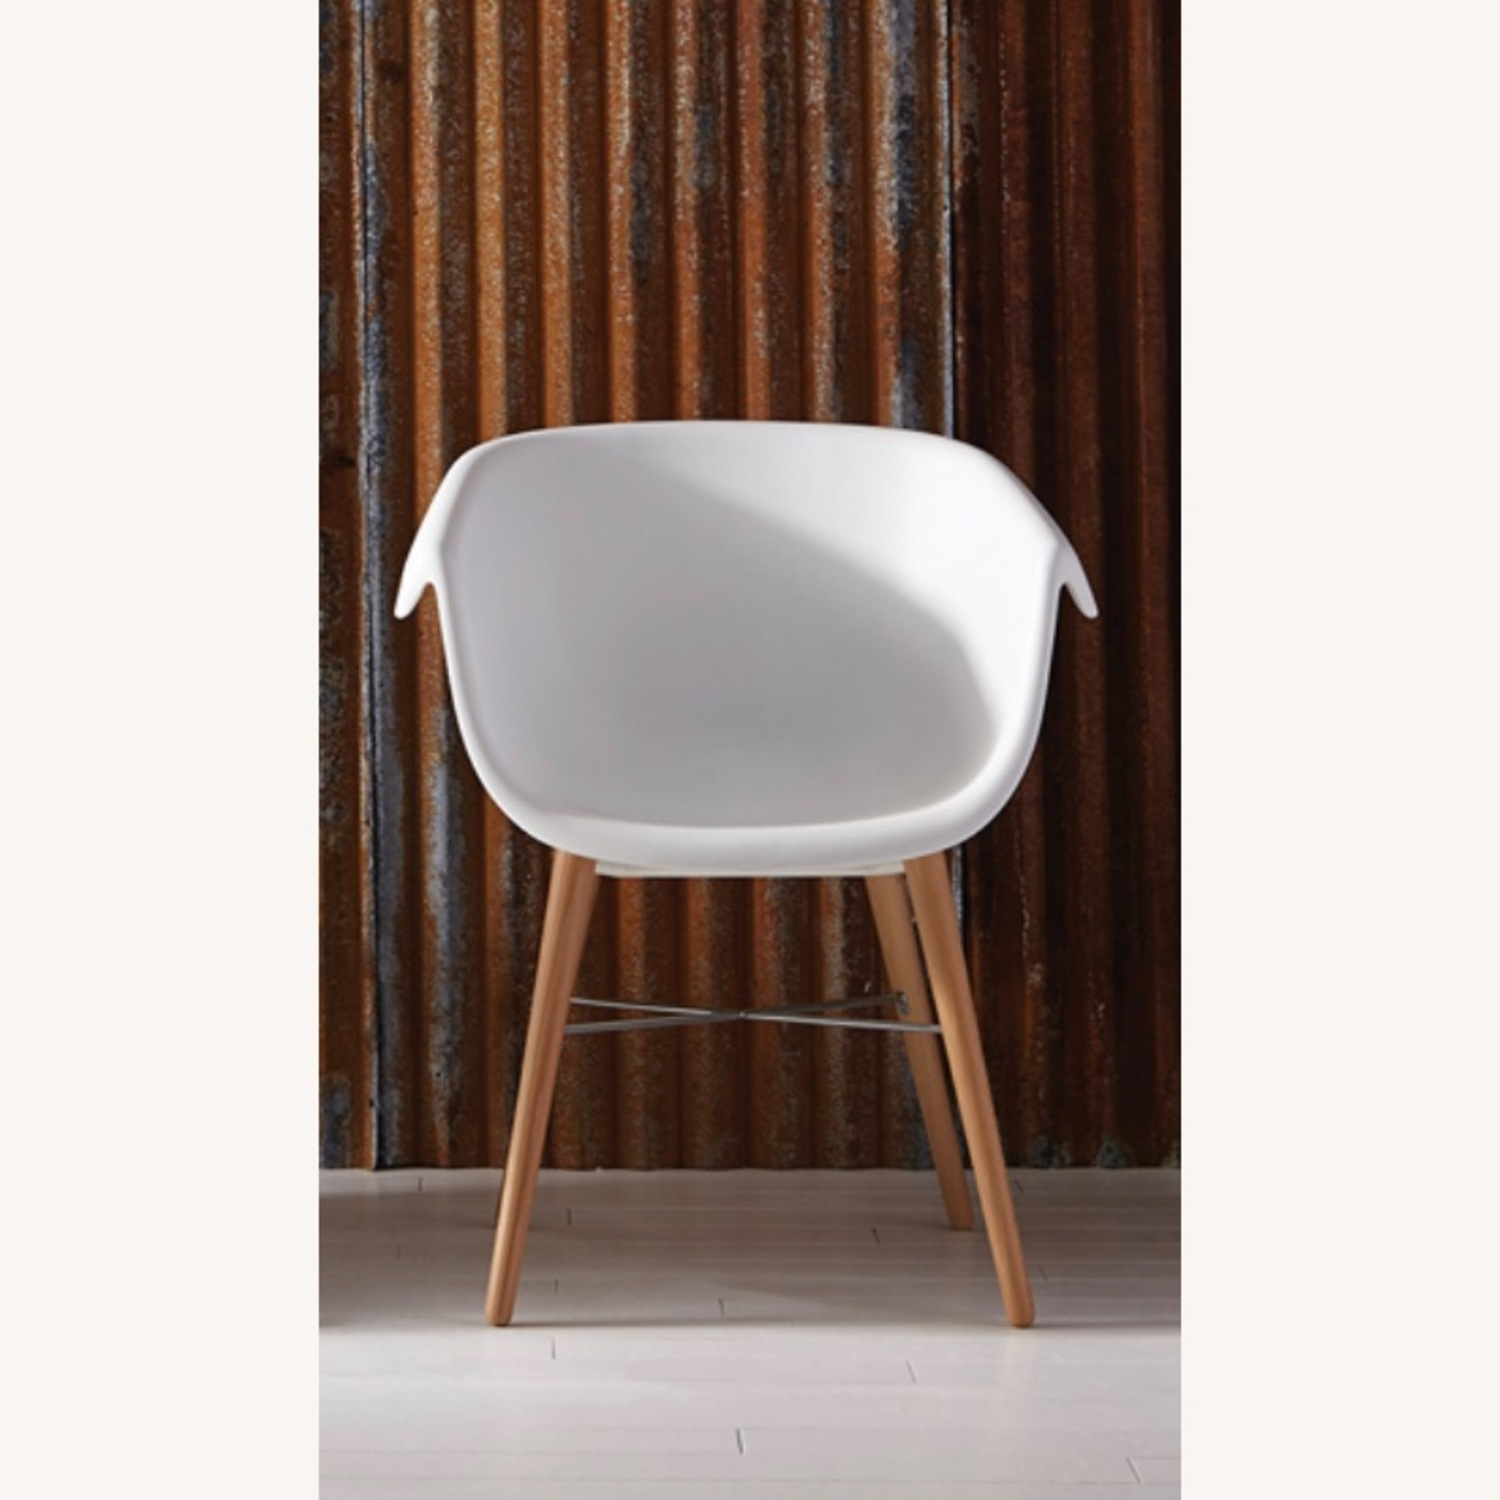 Collier Casprini Dining Chairs by Orlandini - image-7